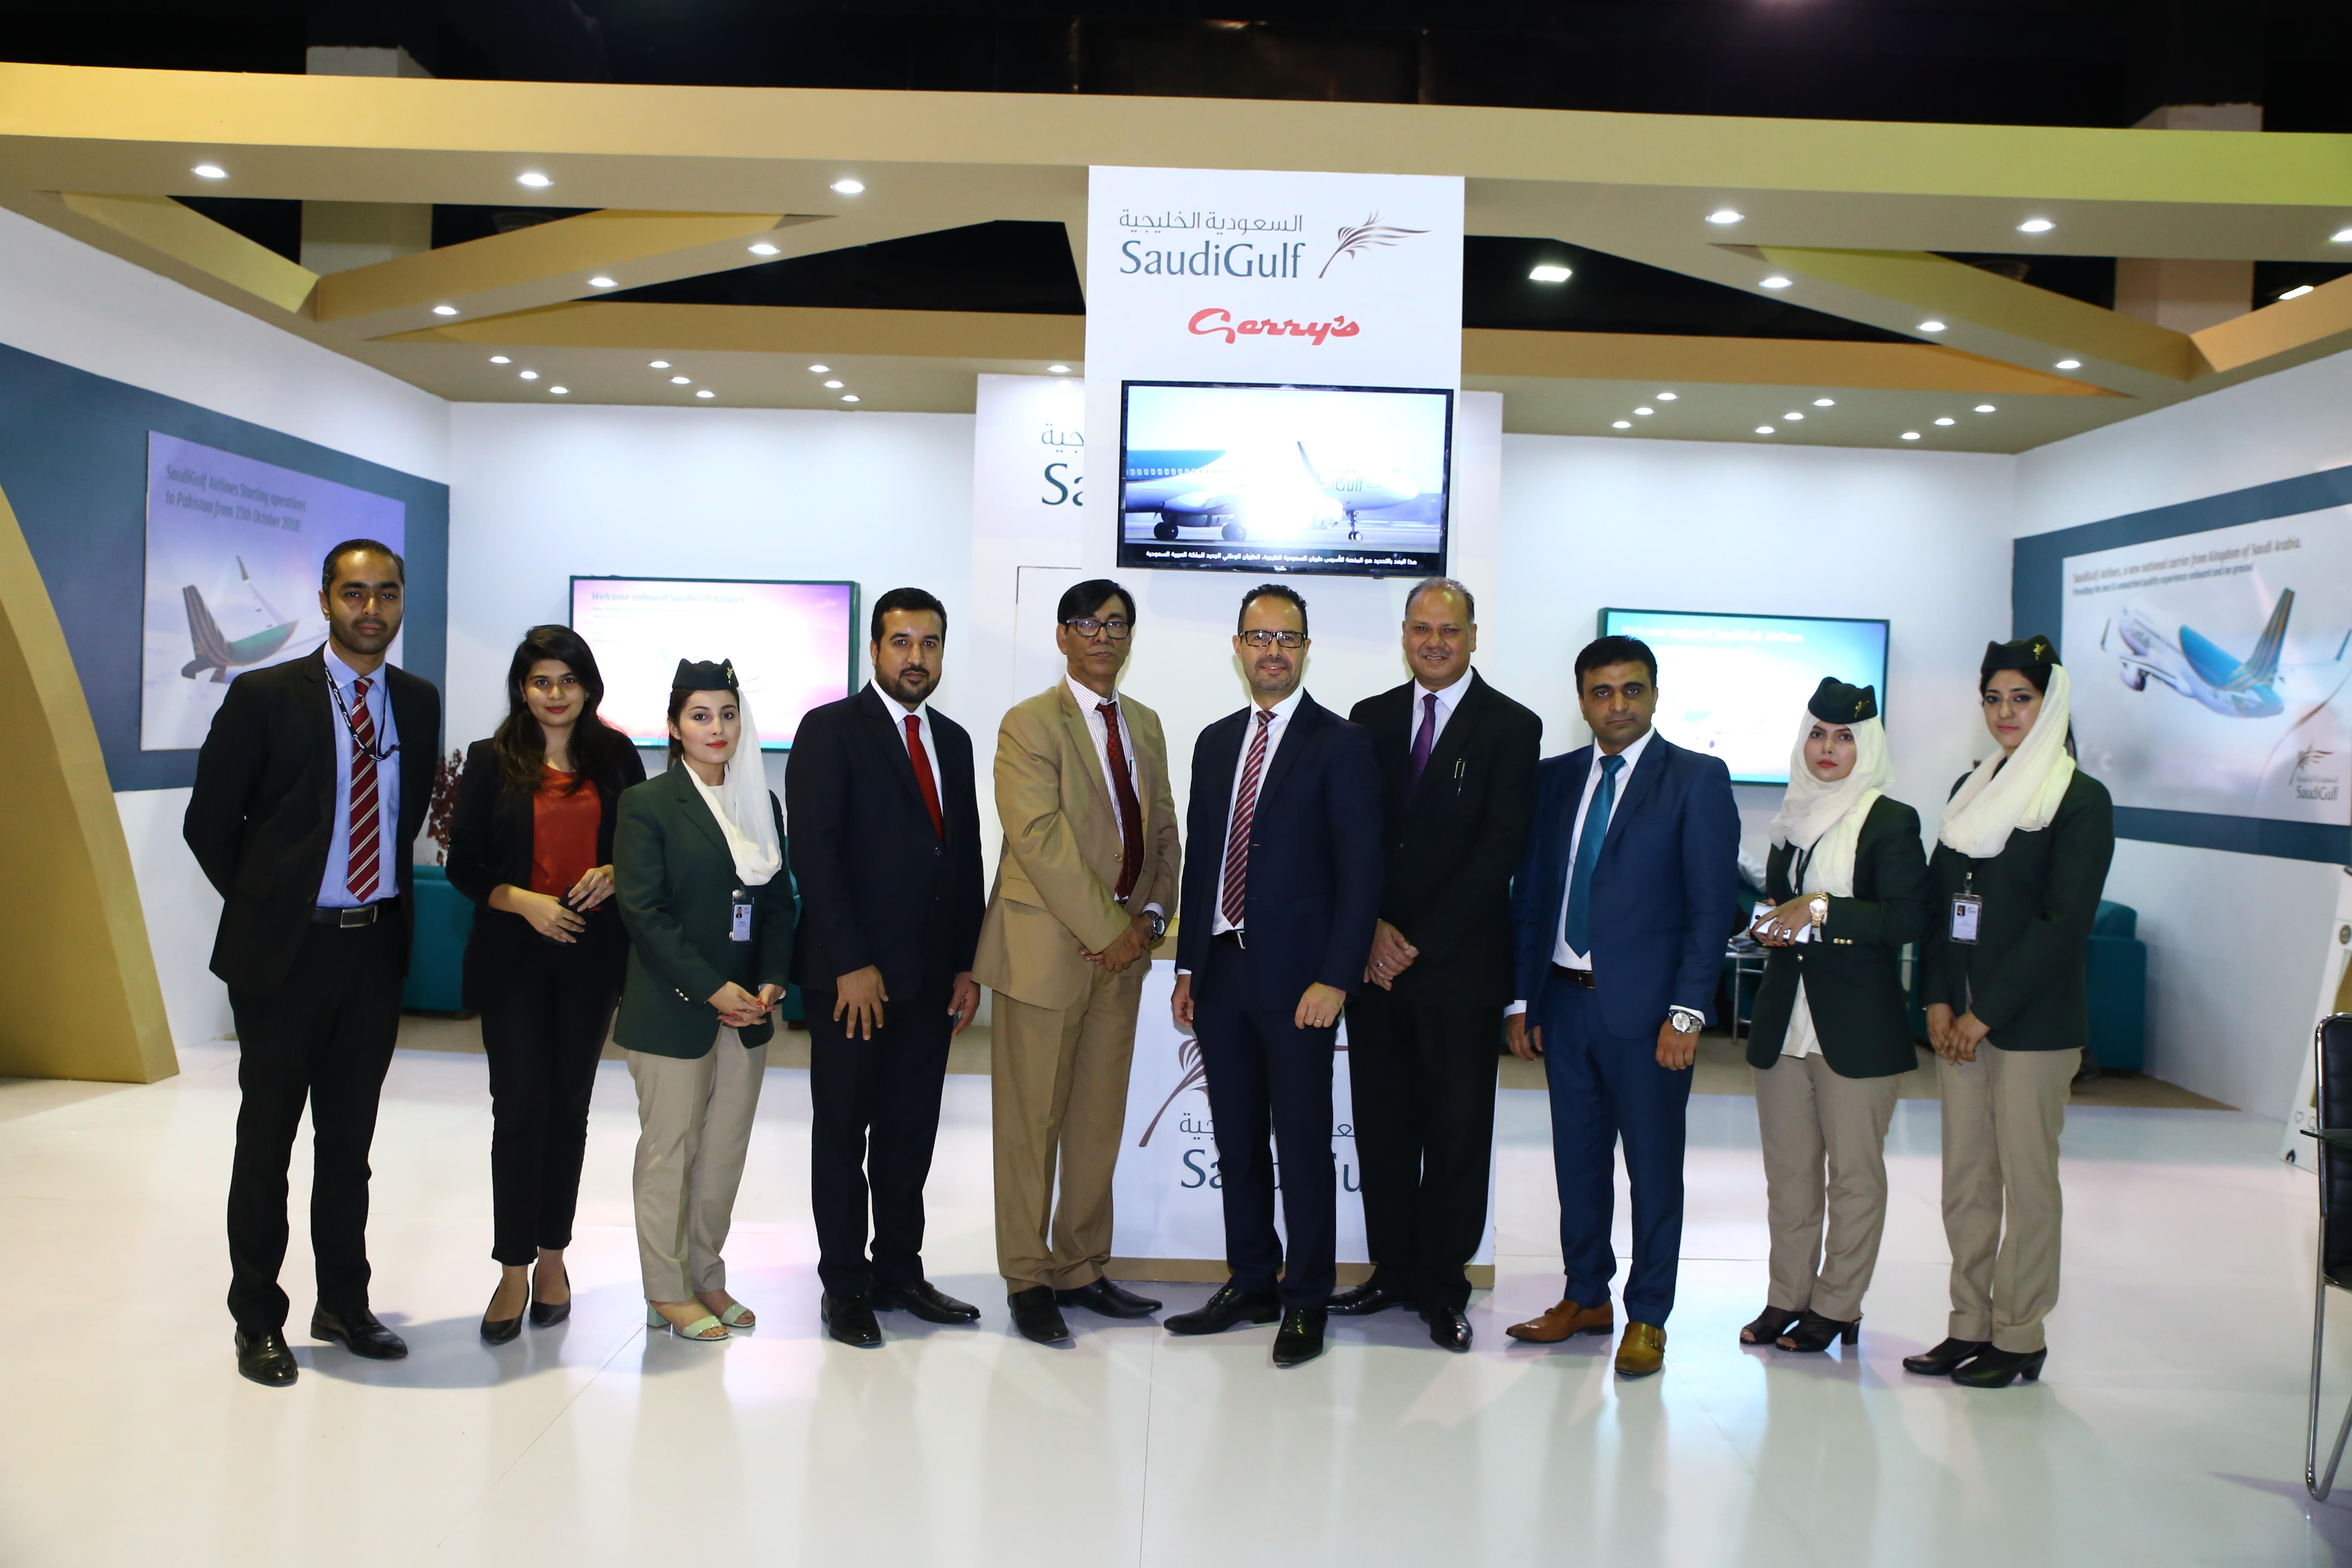 audiGulf Airlines Starting New Direct Flights Between Saudi Arabia and Four Cities in Pakistan